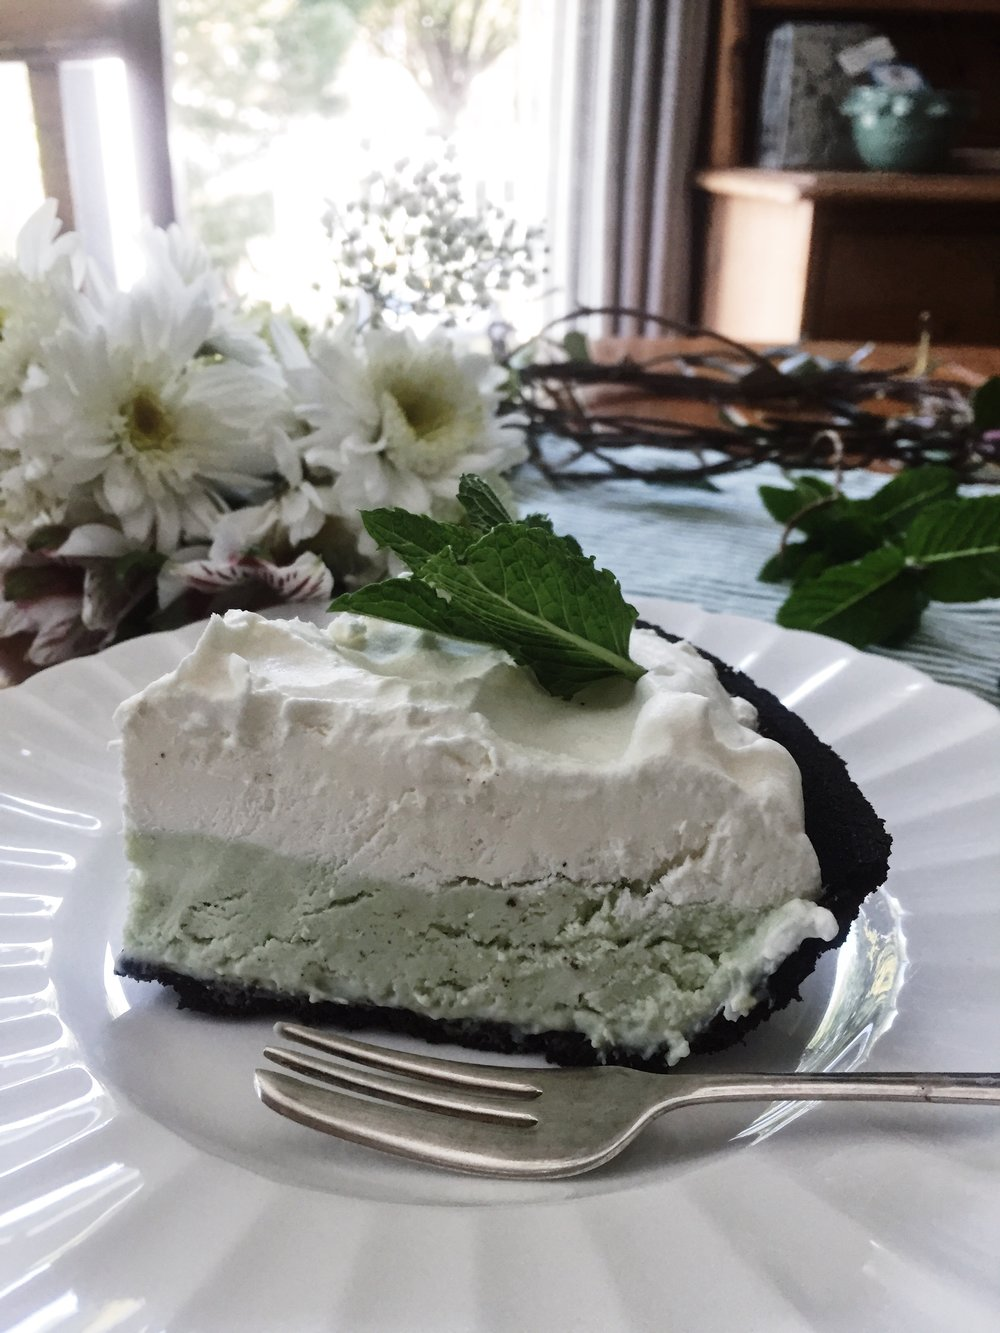 oandystudio-frozen-grasshopper-pie-white-chocolate-recipe-holiday-favorite-pic.jpg